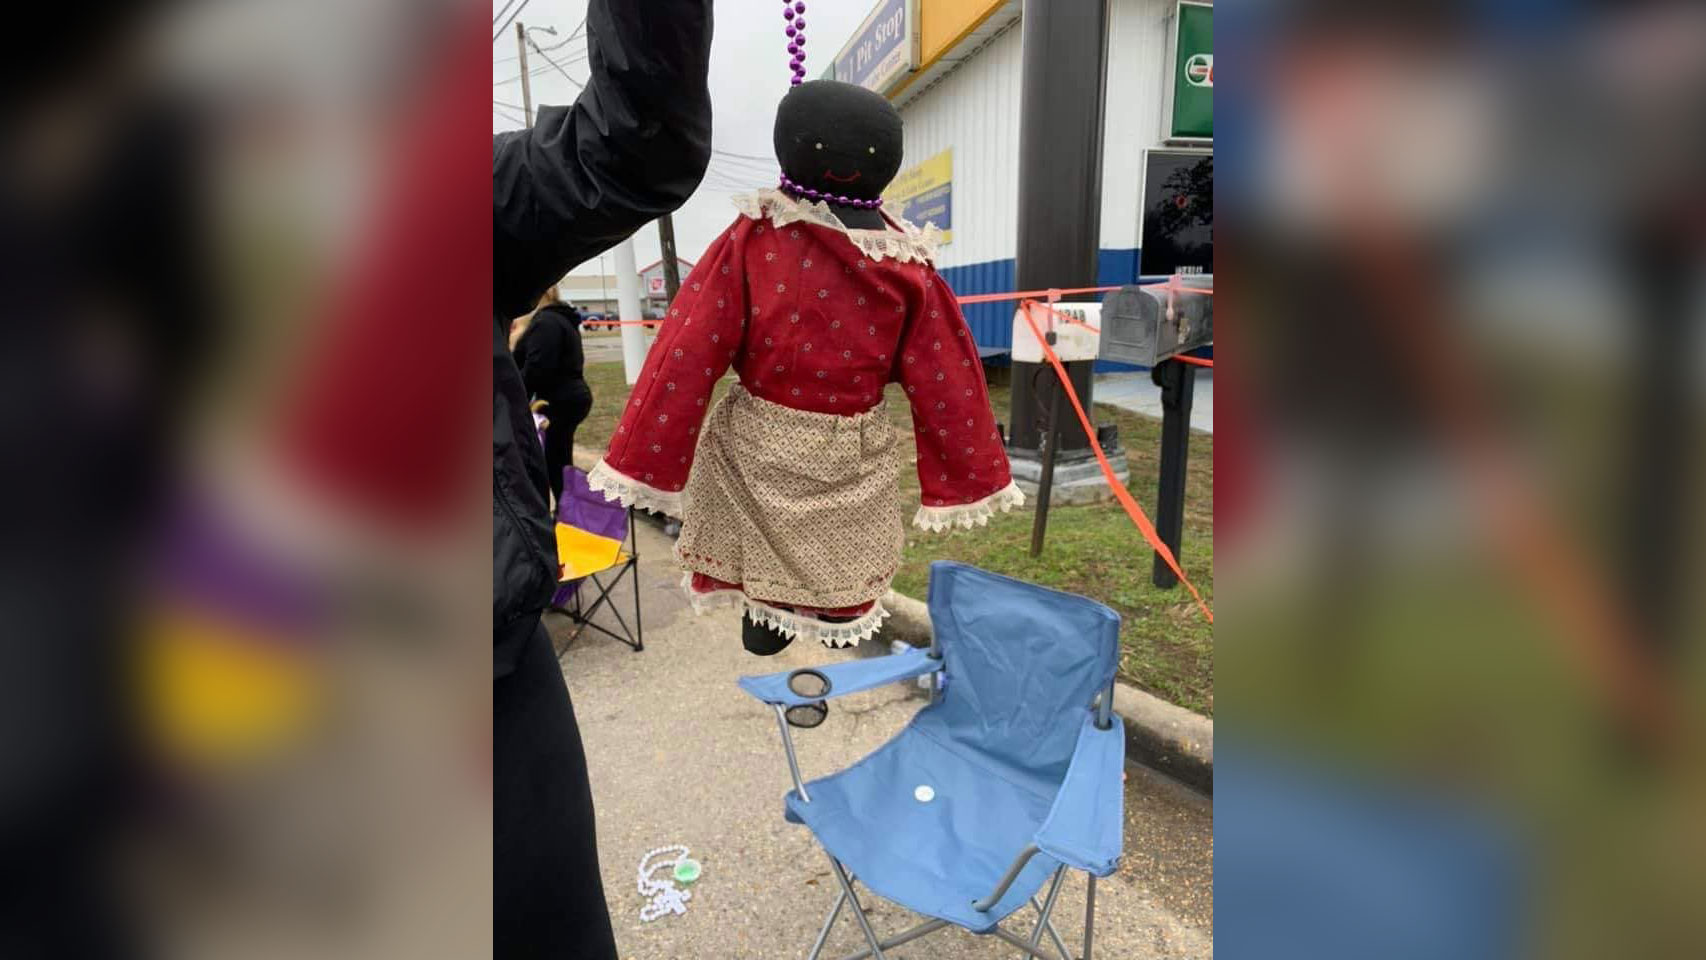 A 12-year-old was given a black doll with beads forming a noose around its neck at a Mardi Gras parade